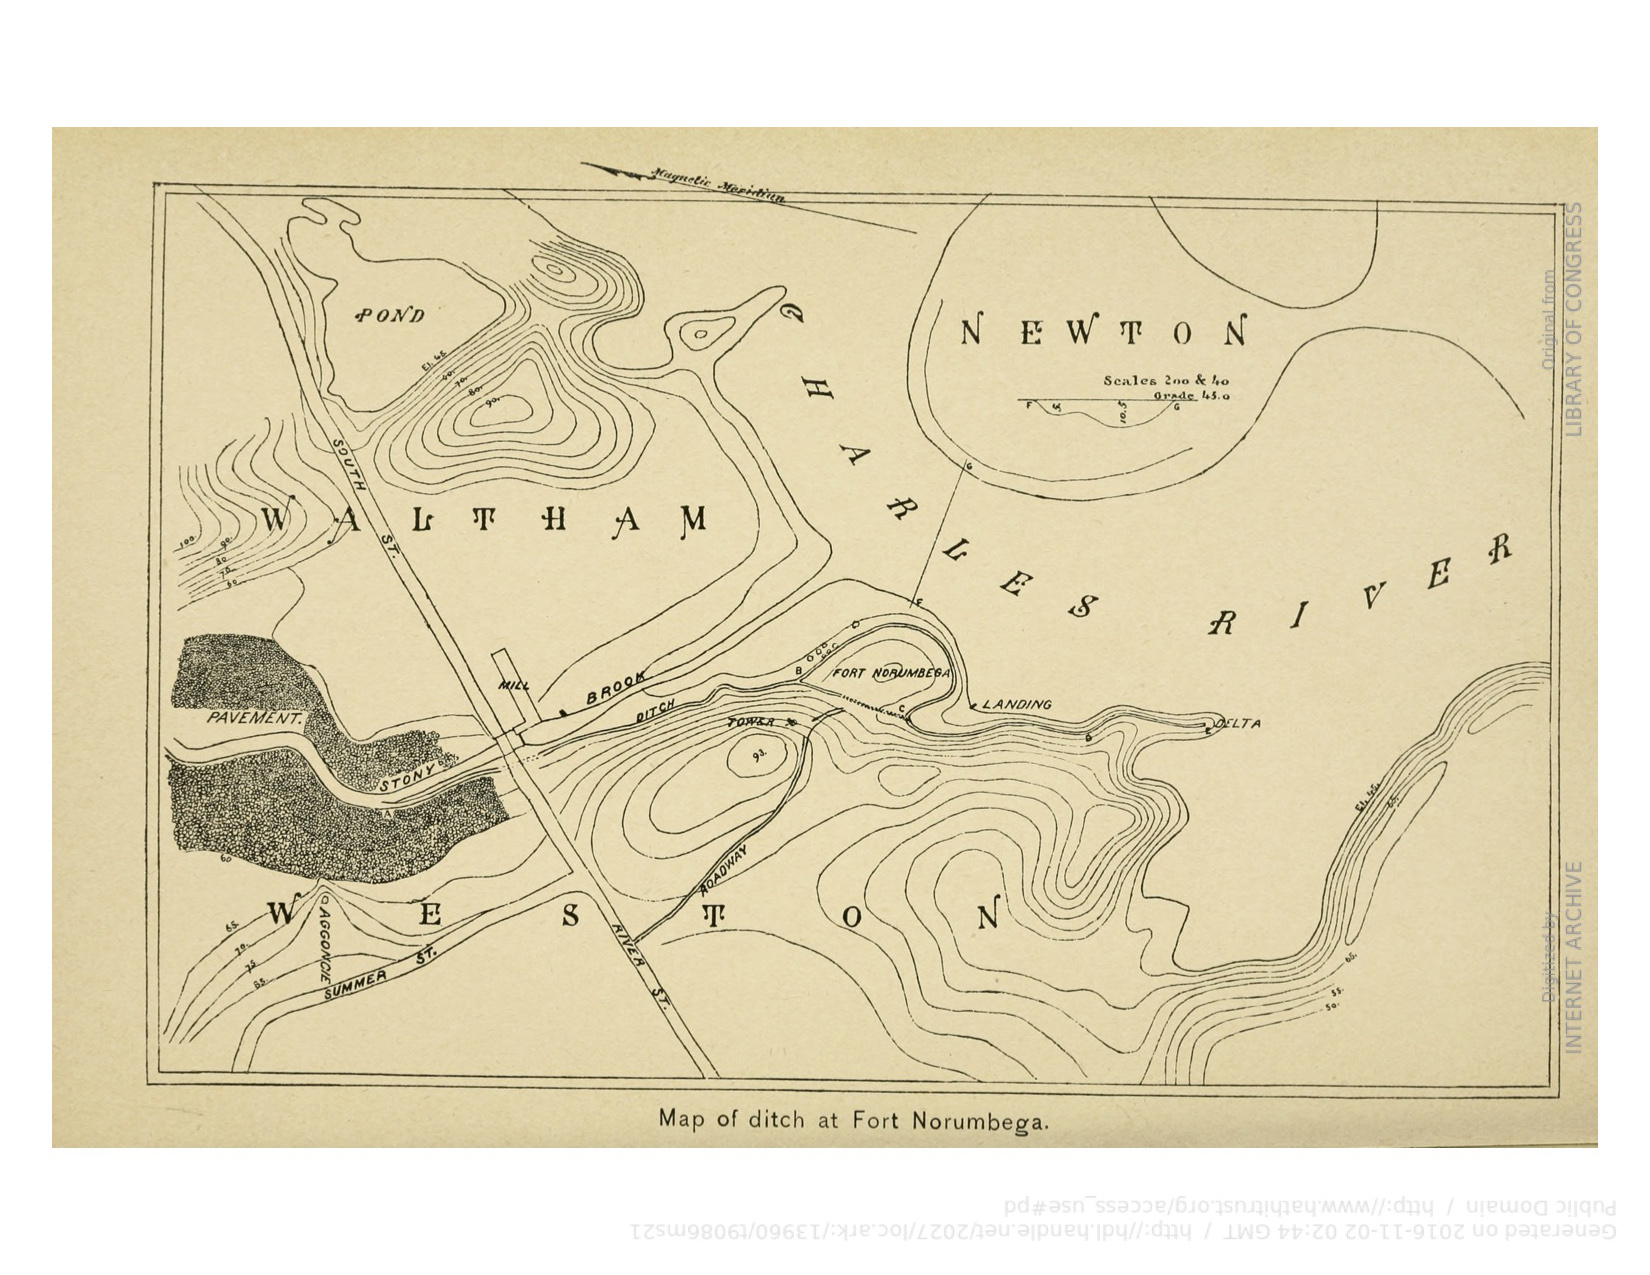 Map of Fort Norumbega and the surrounding fisheries, as imagined by Horsford, from Elizabeth Shepard's Guidebook to Norumbega and Vineland, published in 1893.